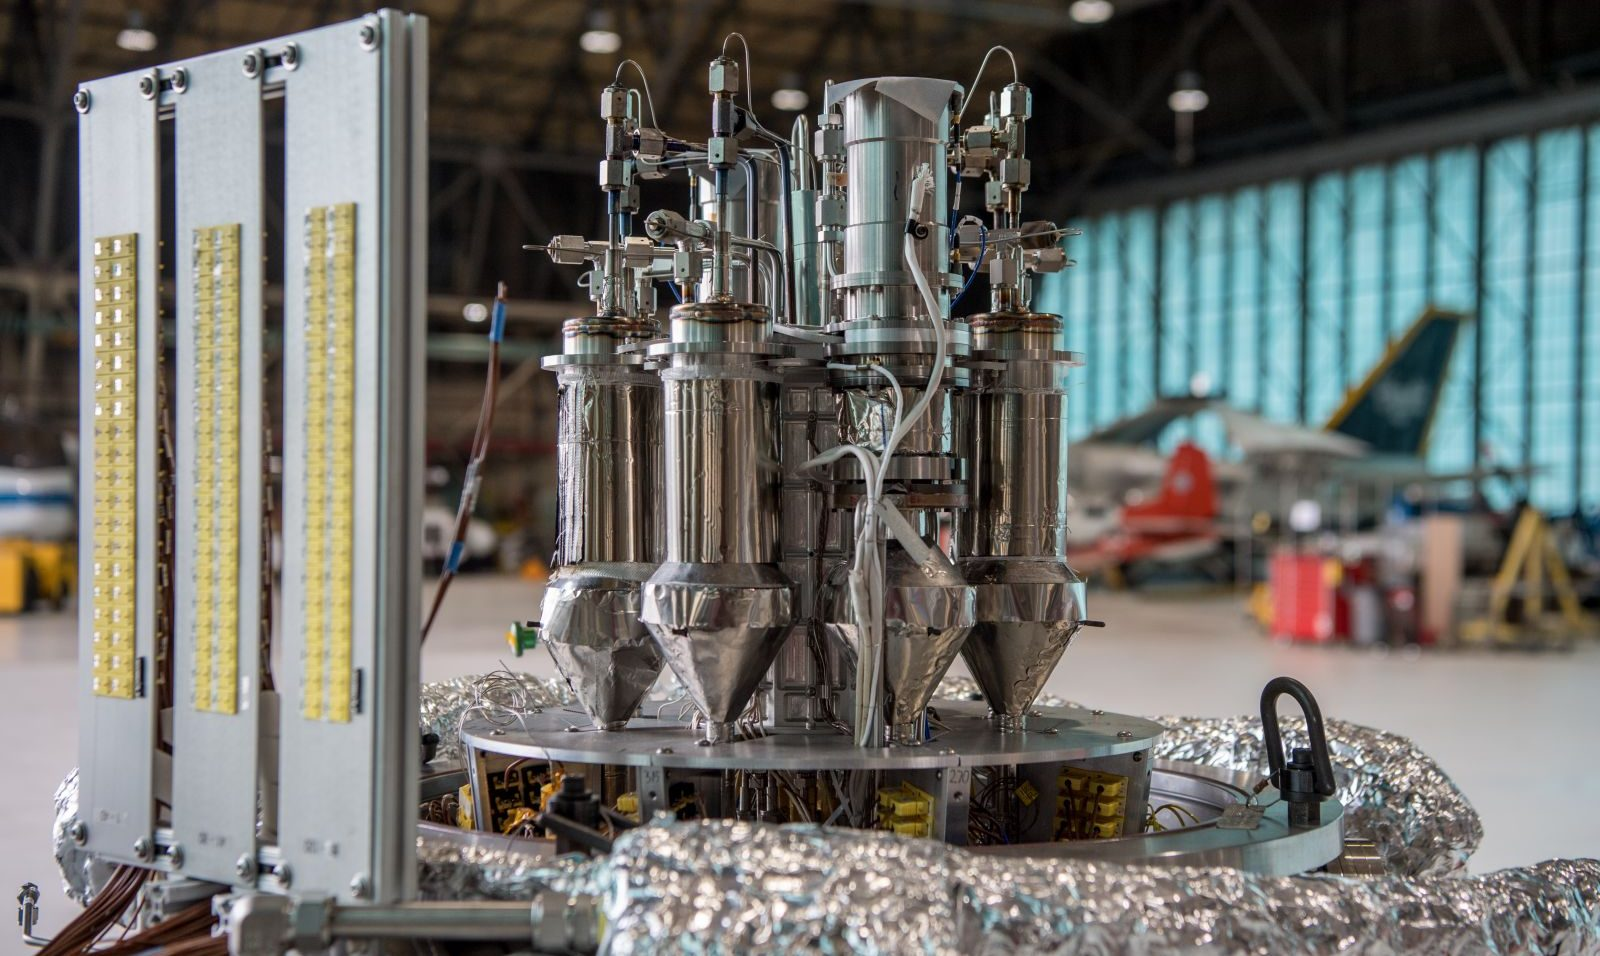 A demonstrator of a new kilopower reactor under development by NASA and the Department of Energy. Photo Credit: NASA Glenn Research Center